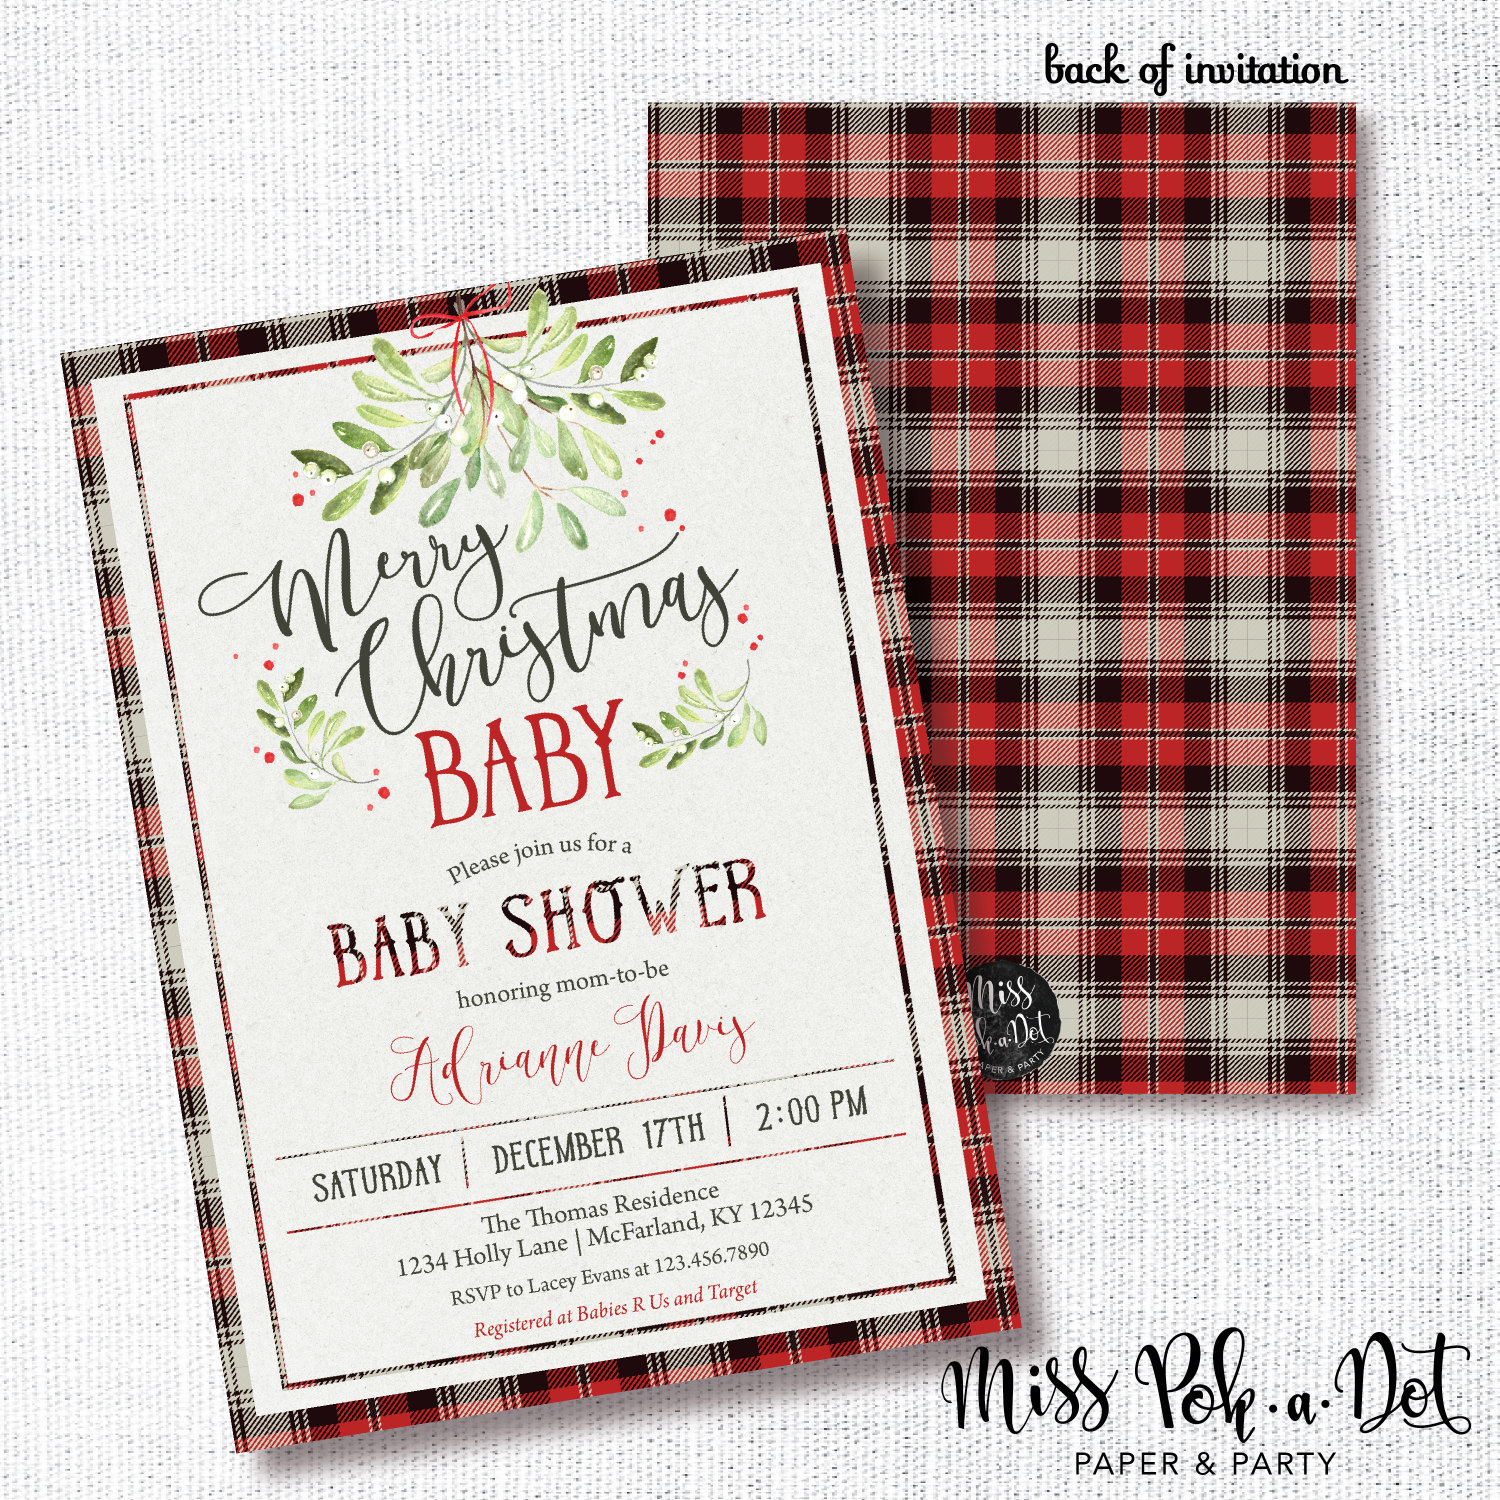 Baby Shower Ideas - Food, Decor, Parties + Crafts - Southern Living